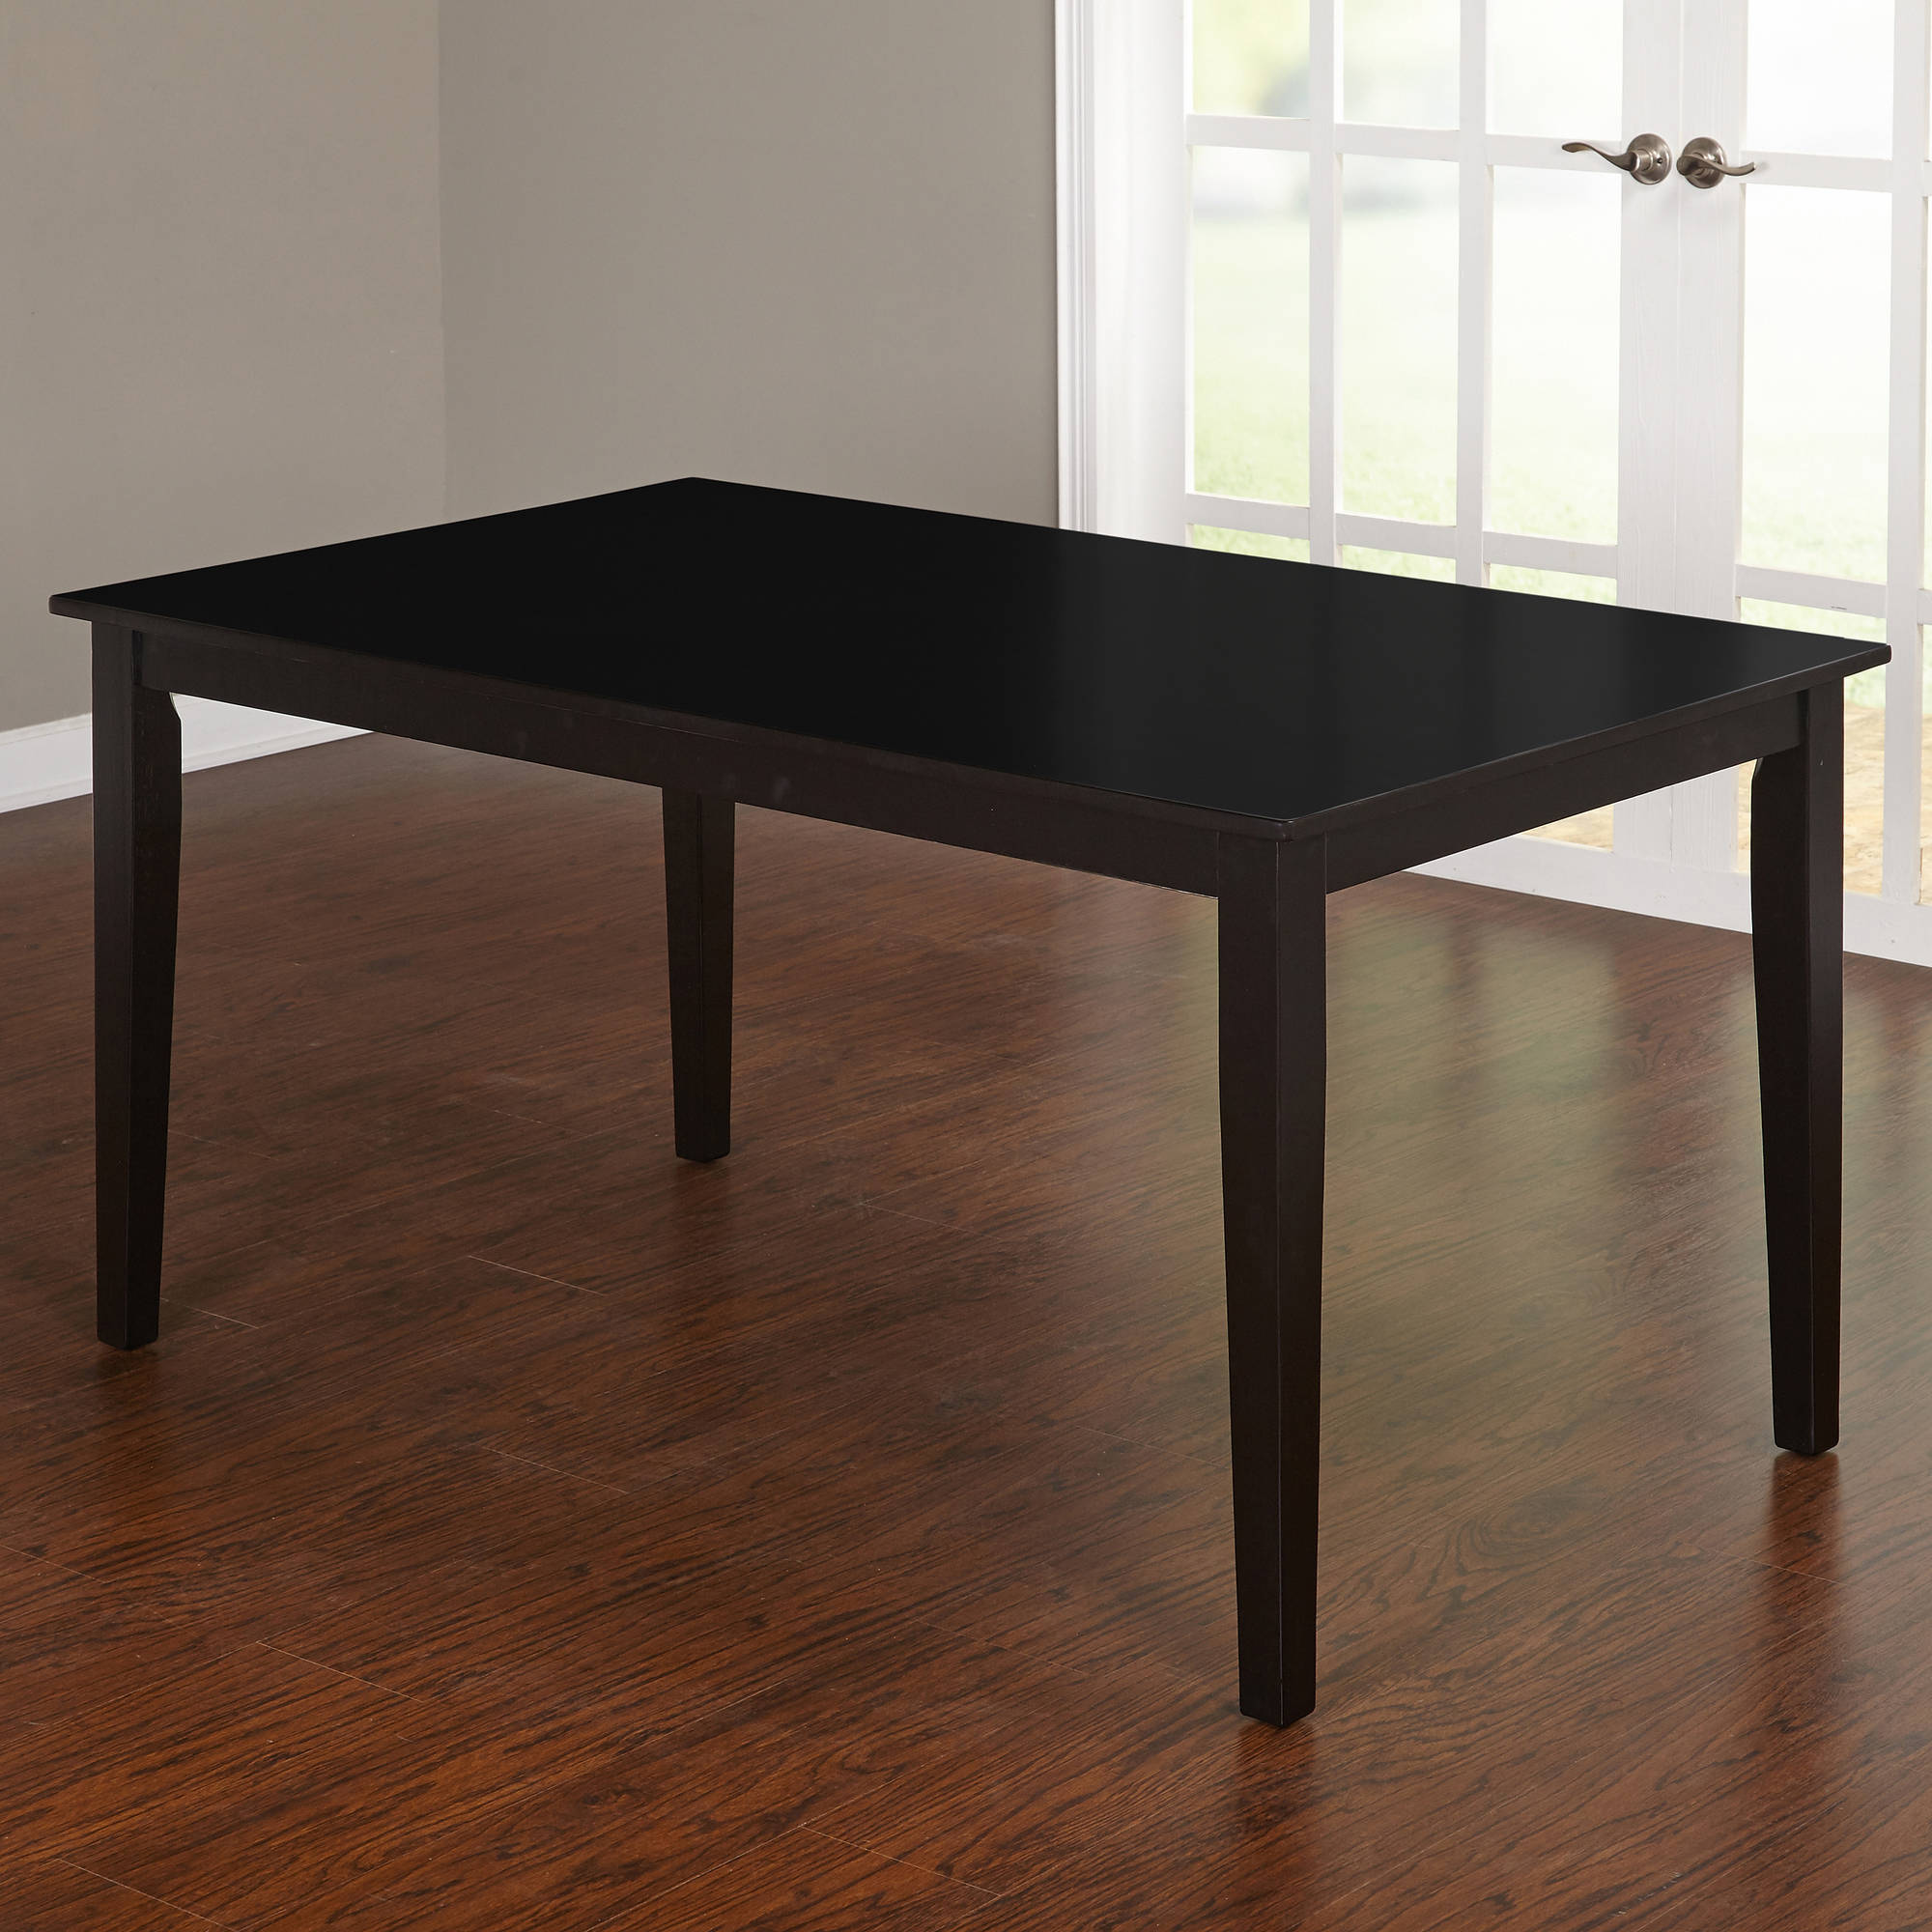 Contemporary Large Dining Table, Black